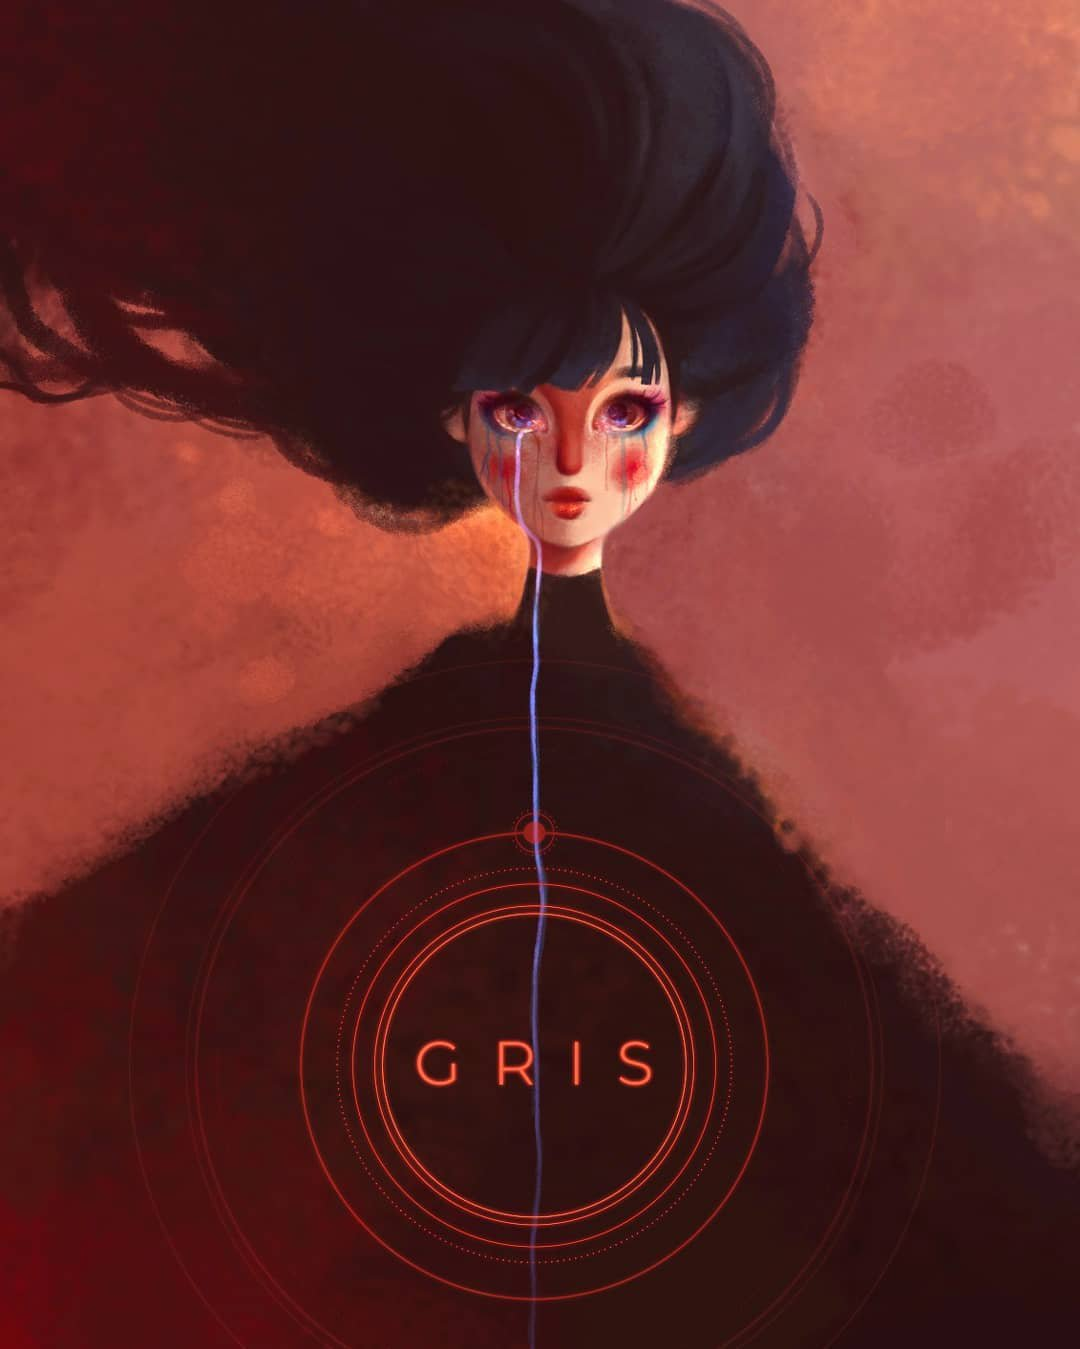 Fan art GRIS – Ingrid Arbiol (@ingridarb)